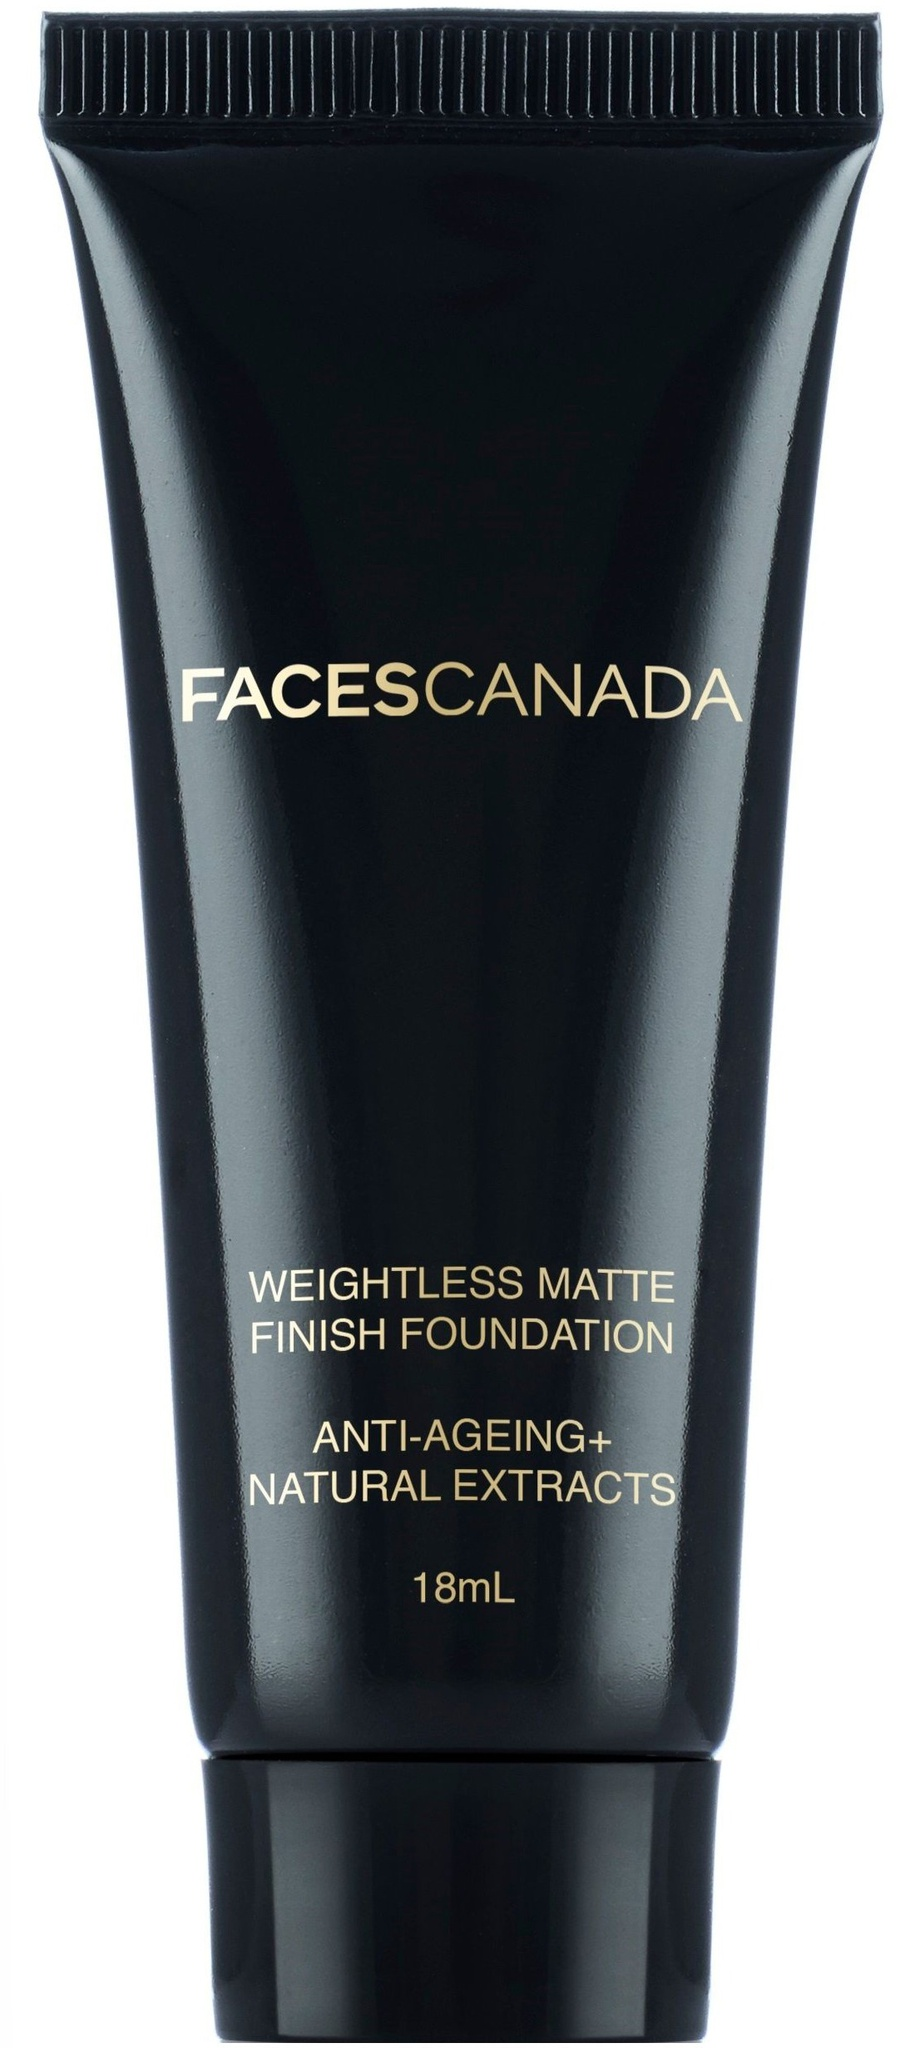 Faces Canada Weightless Matte Foundation